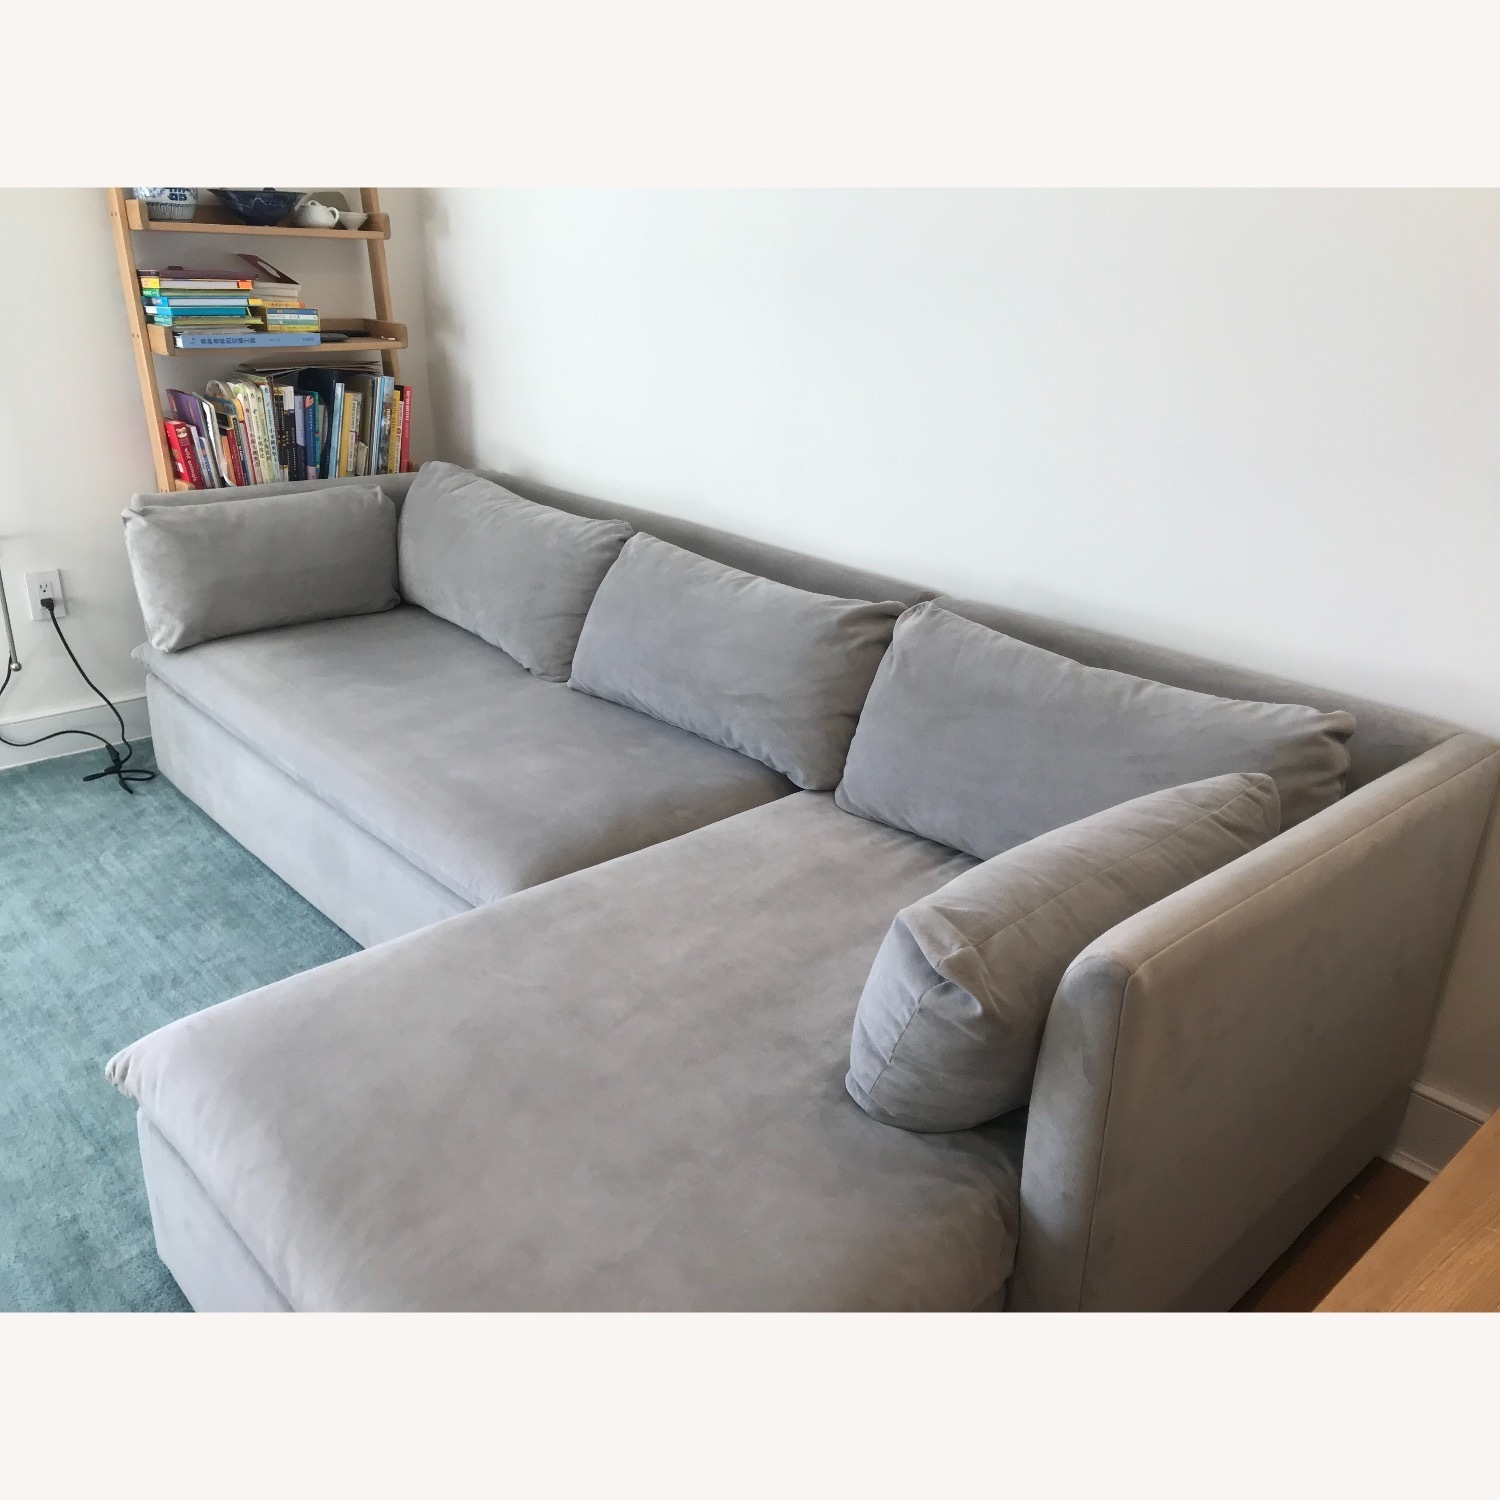 West Elm Shelter Sectional Sofa Dove Gray - image-2